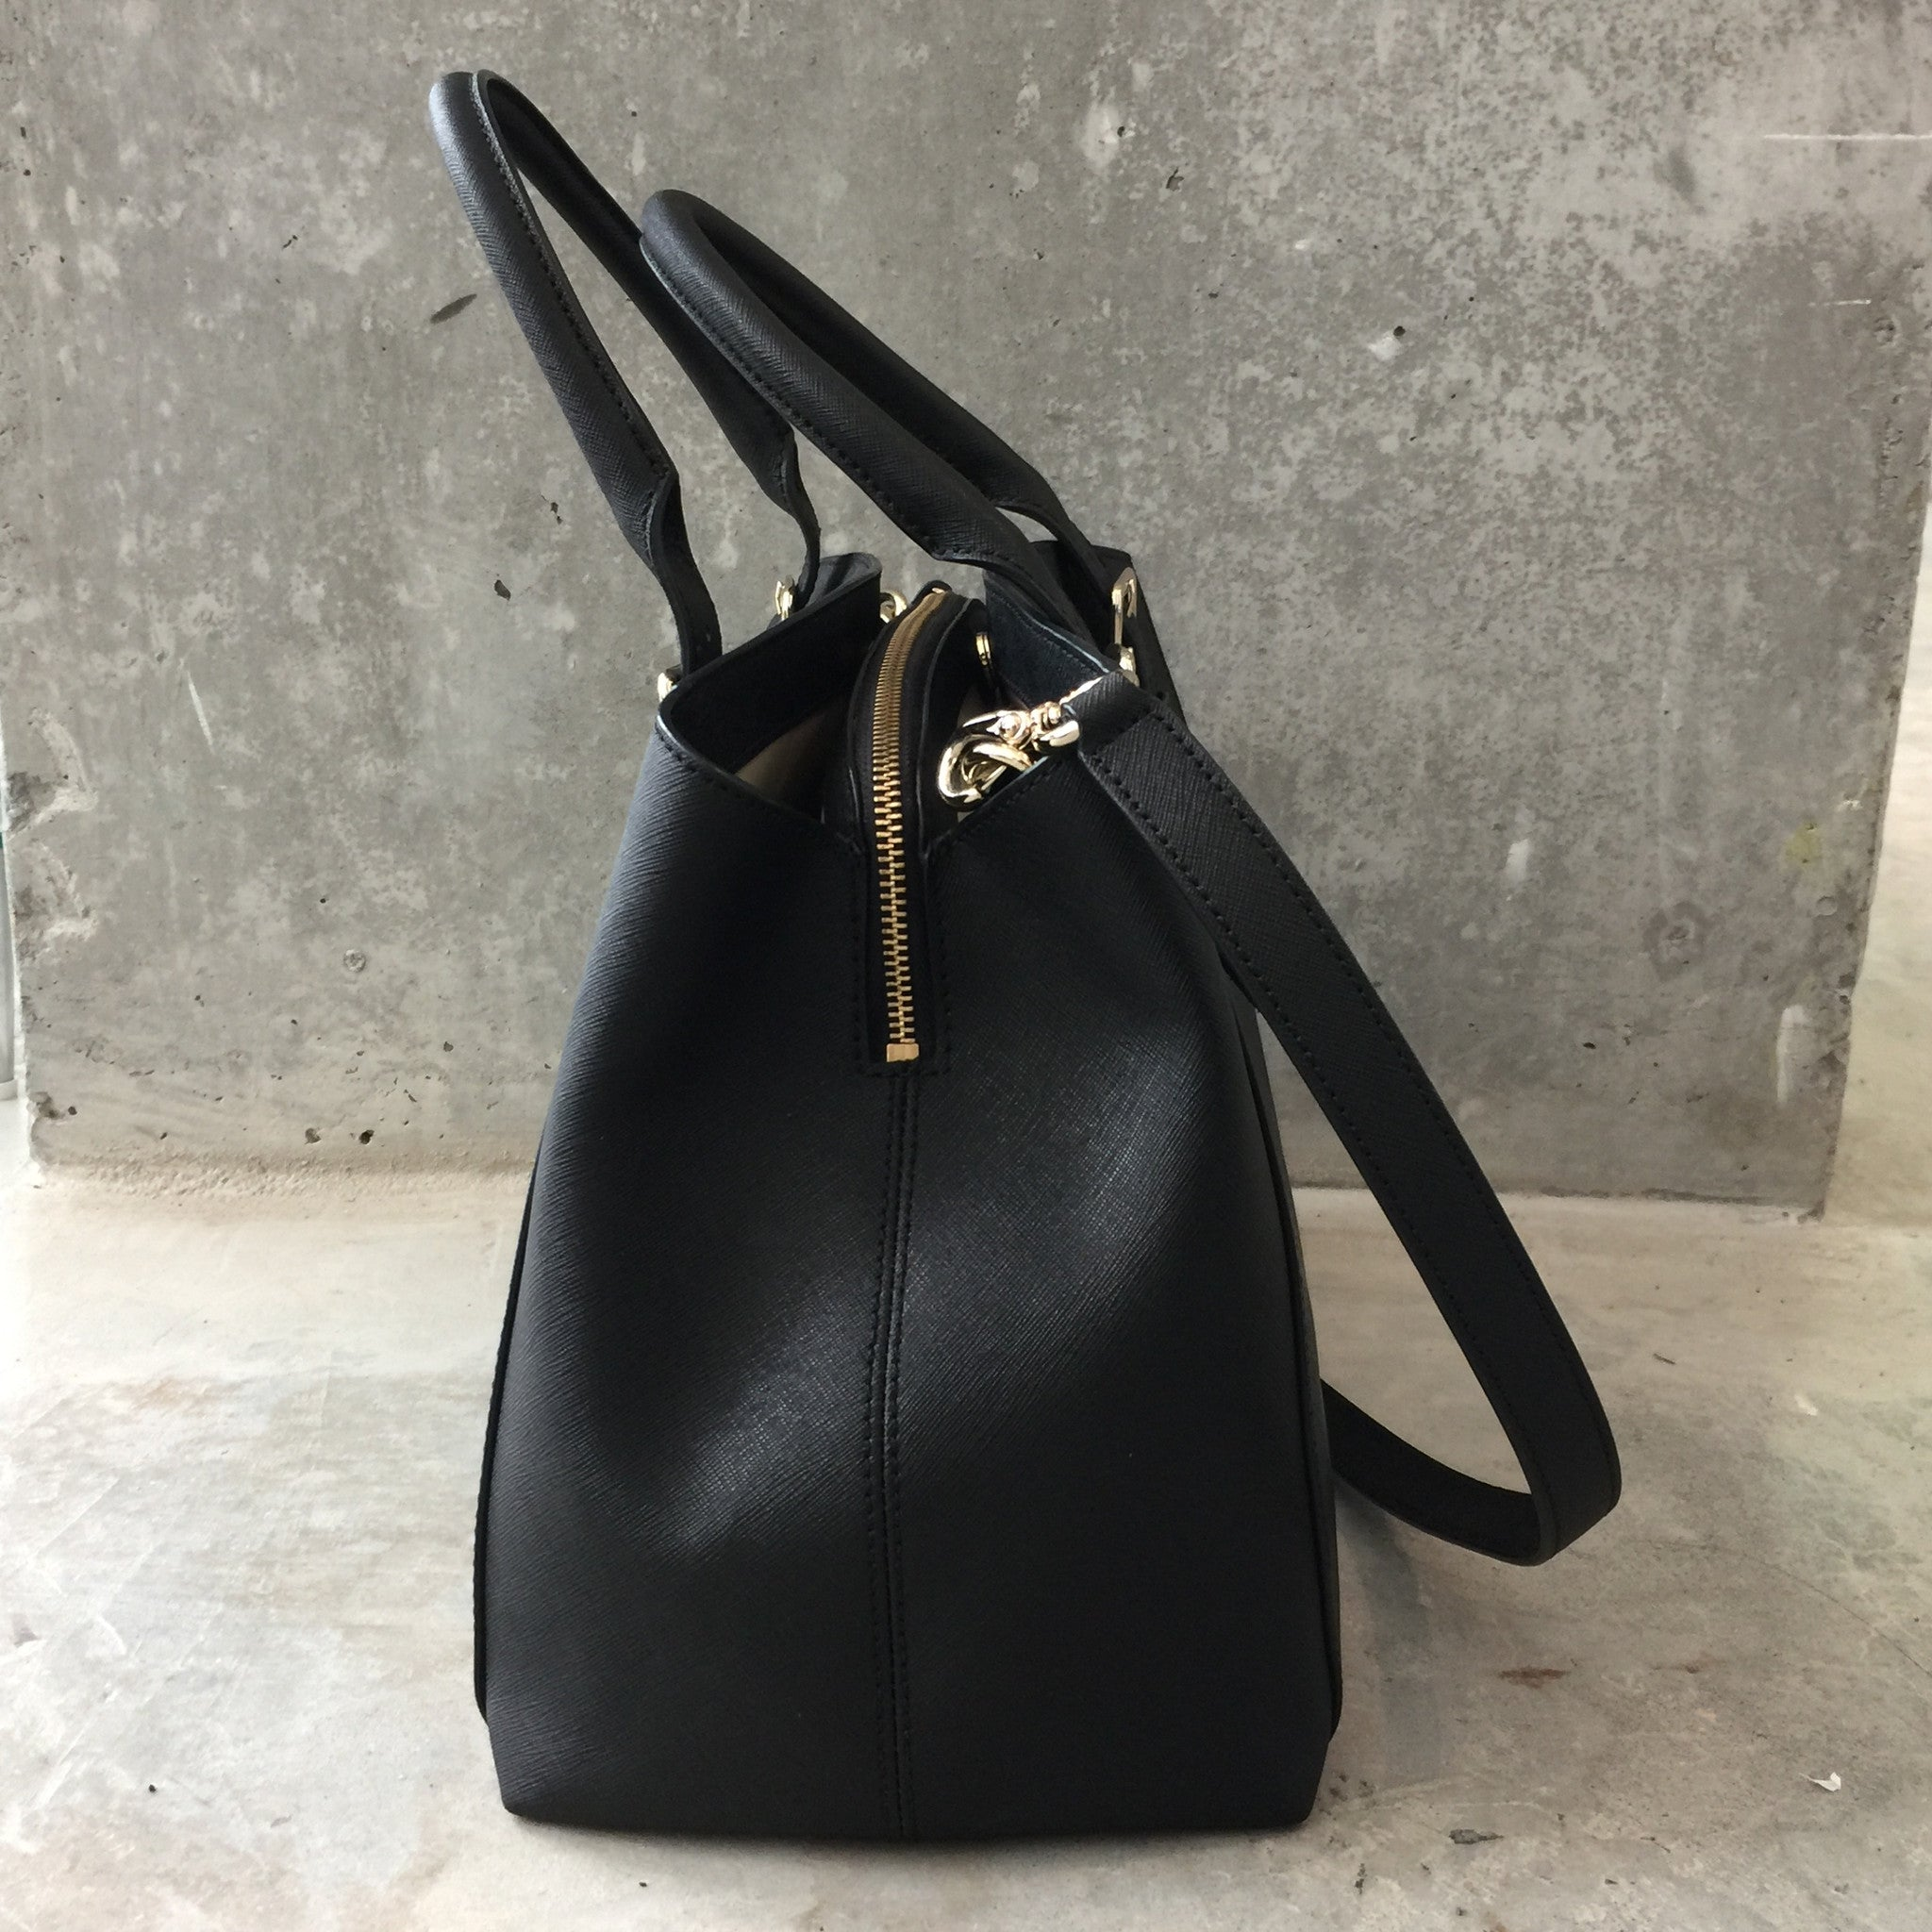 Authentic KATE SPADE Black Saffiano Bag